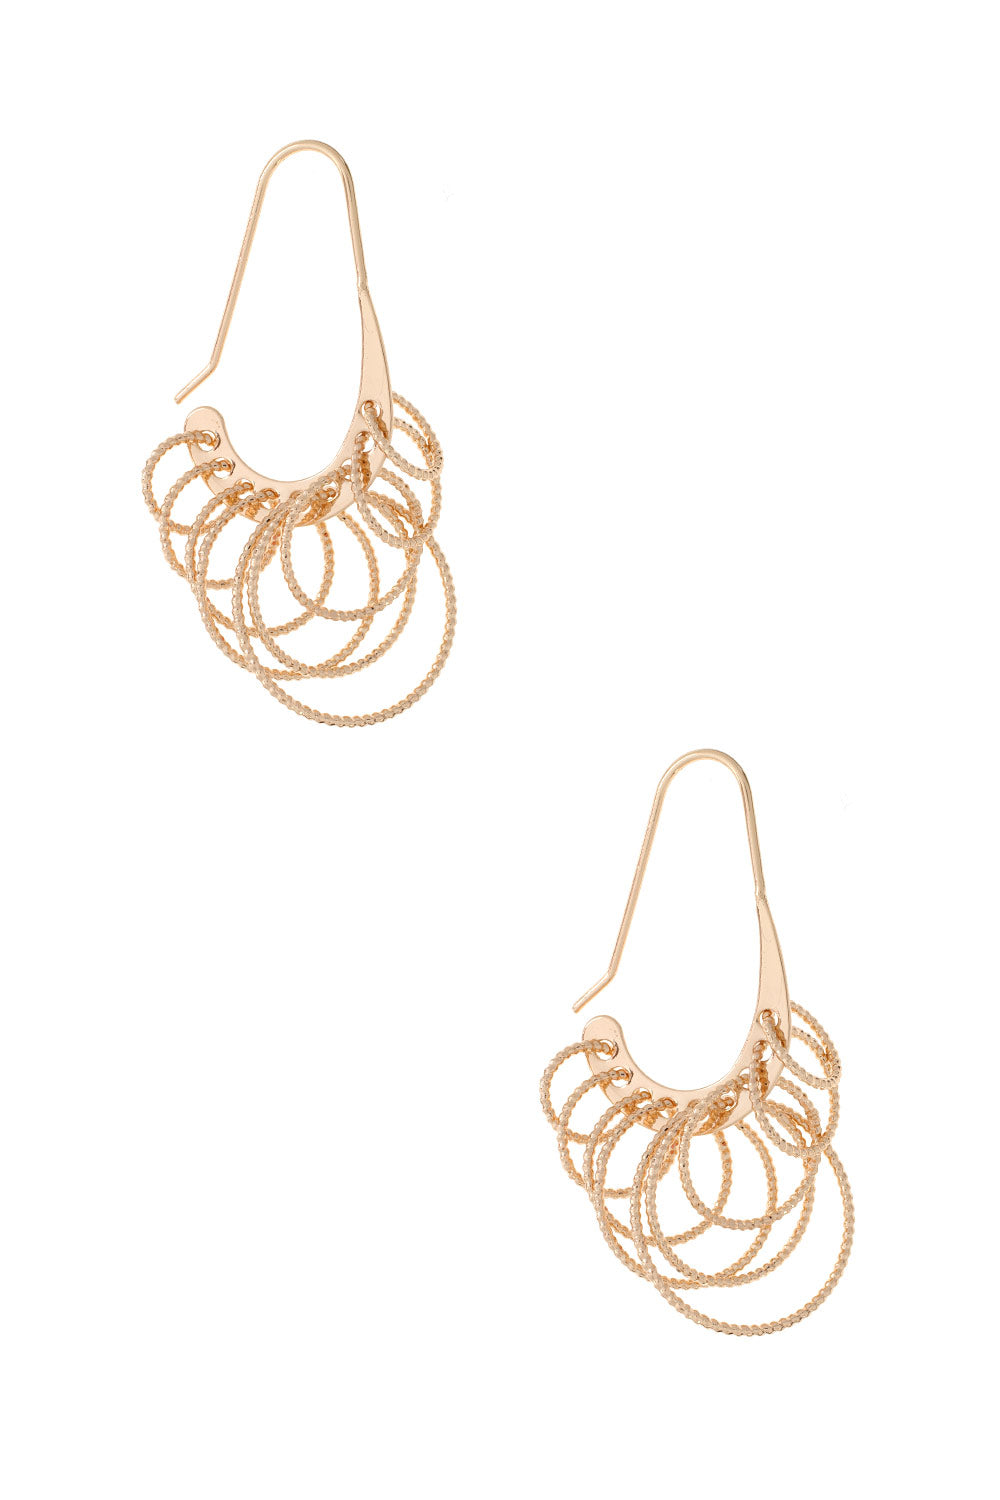 Type 1 Loop de Loop Earrings